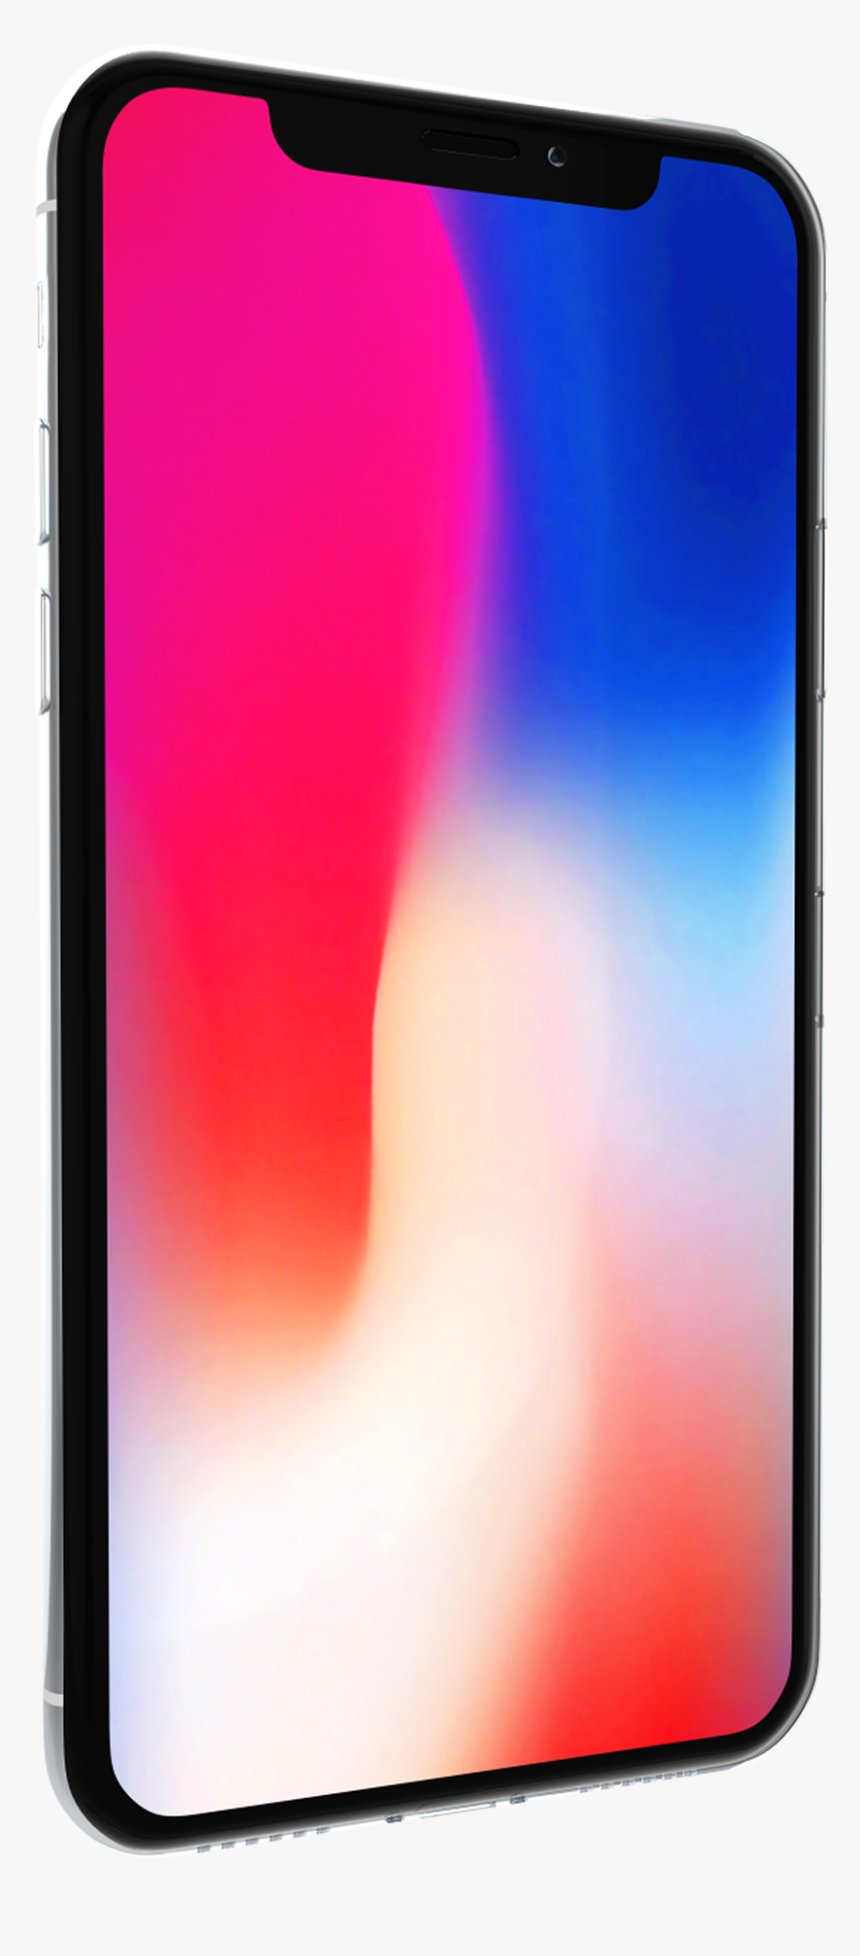 Iphone X - Iphone X Royalty Free, HD Png Download, Free Download